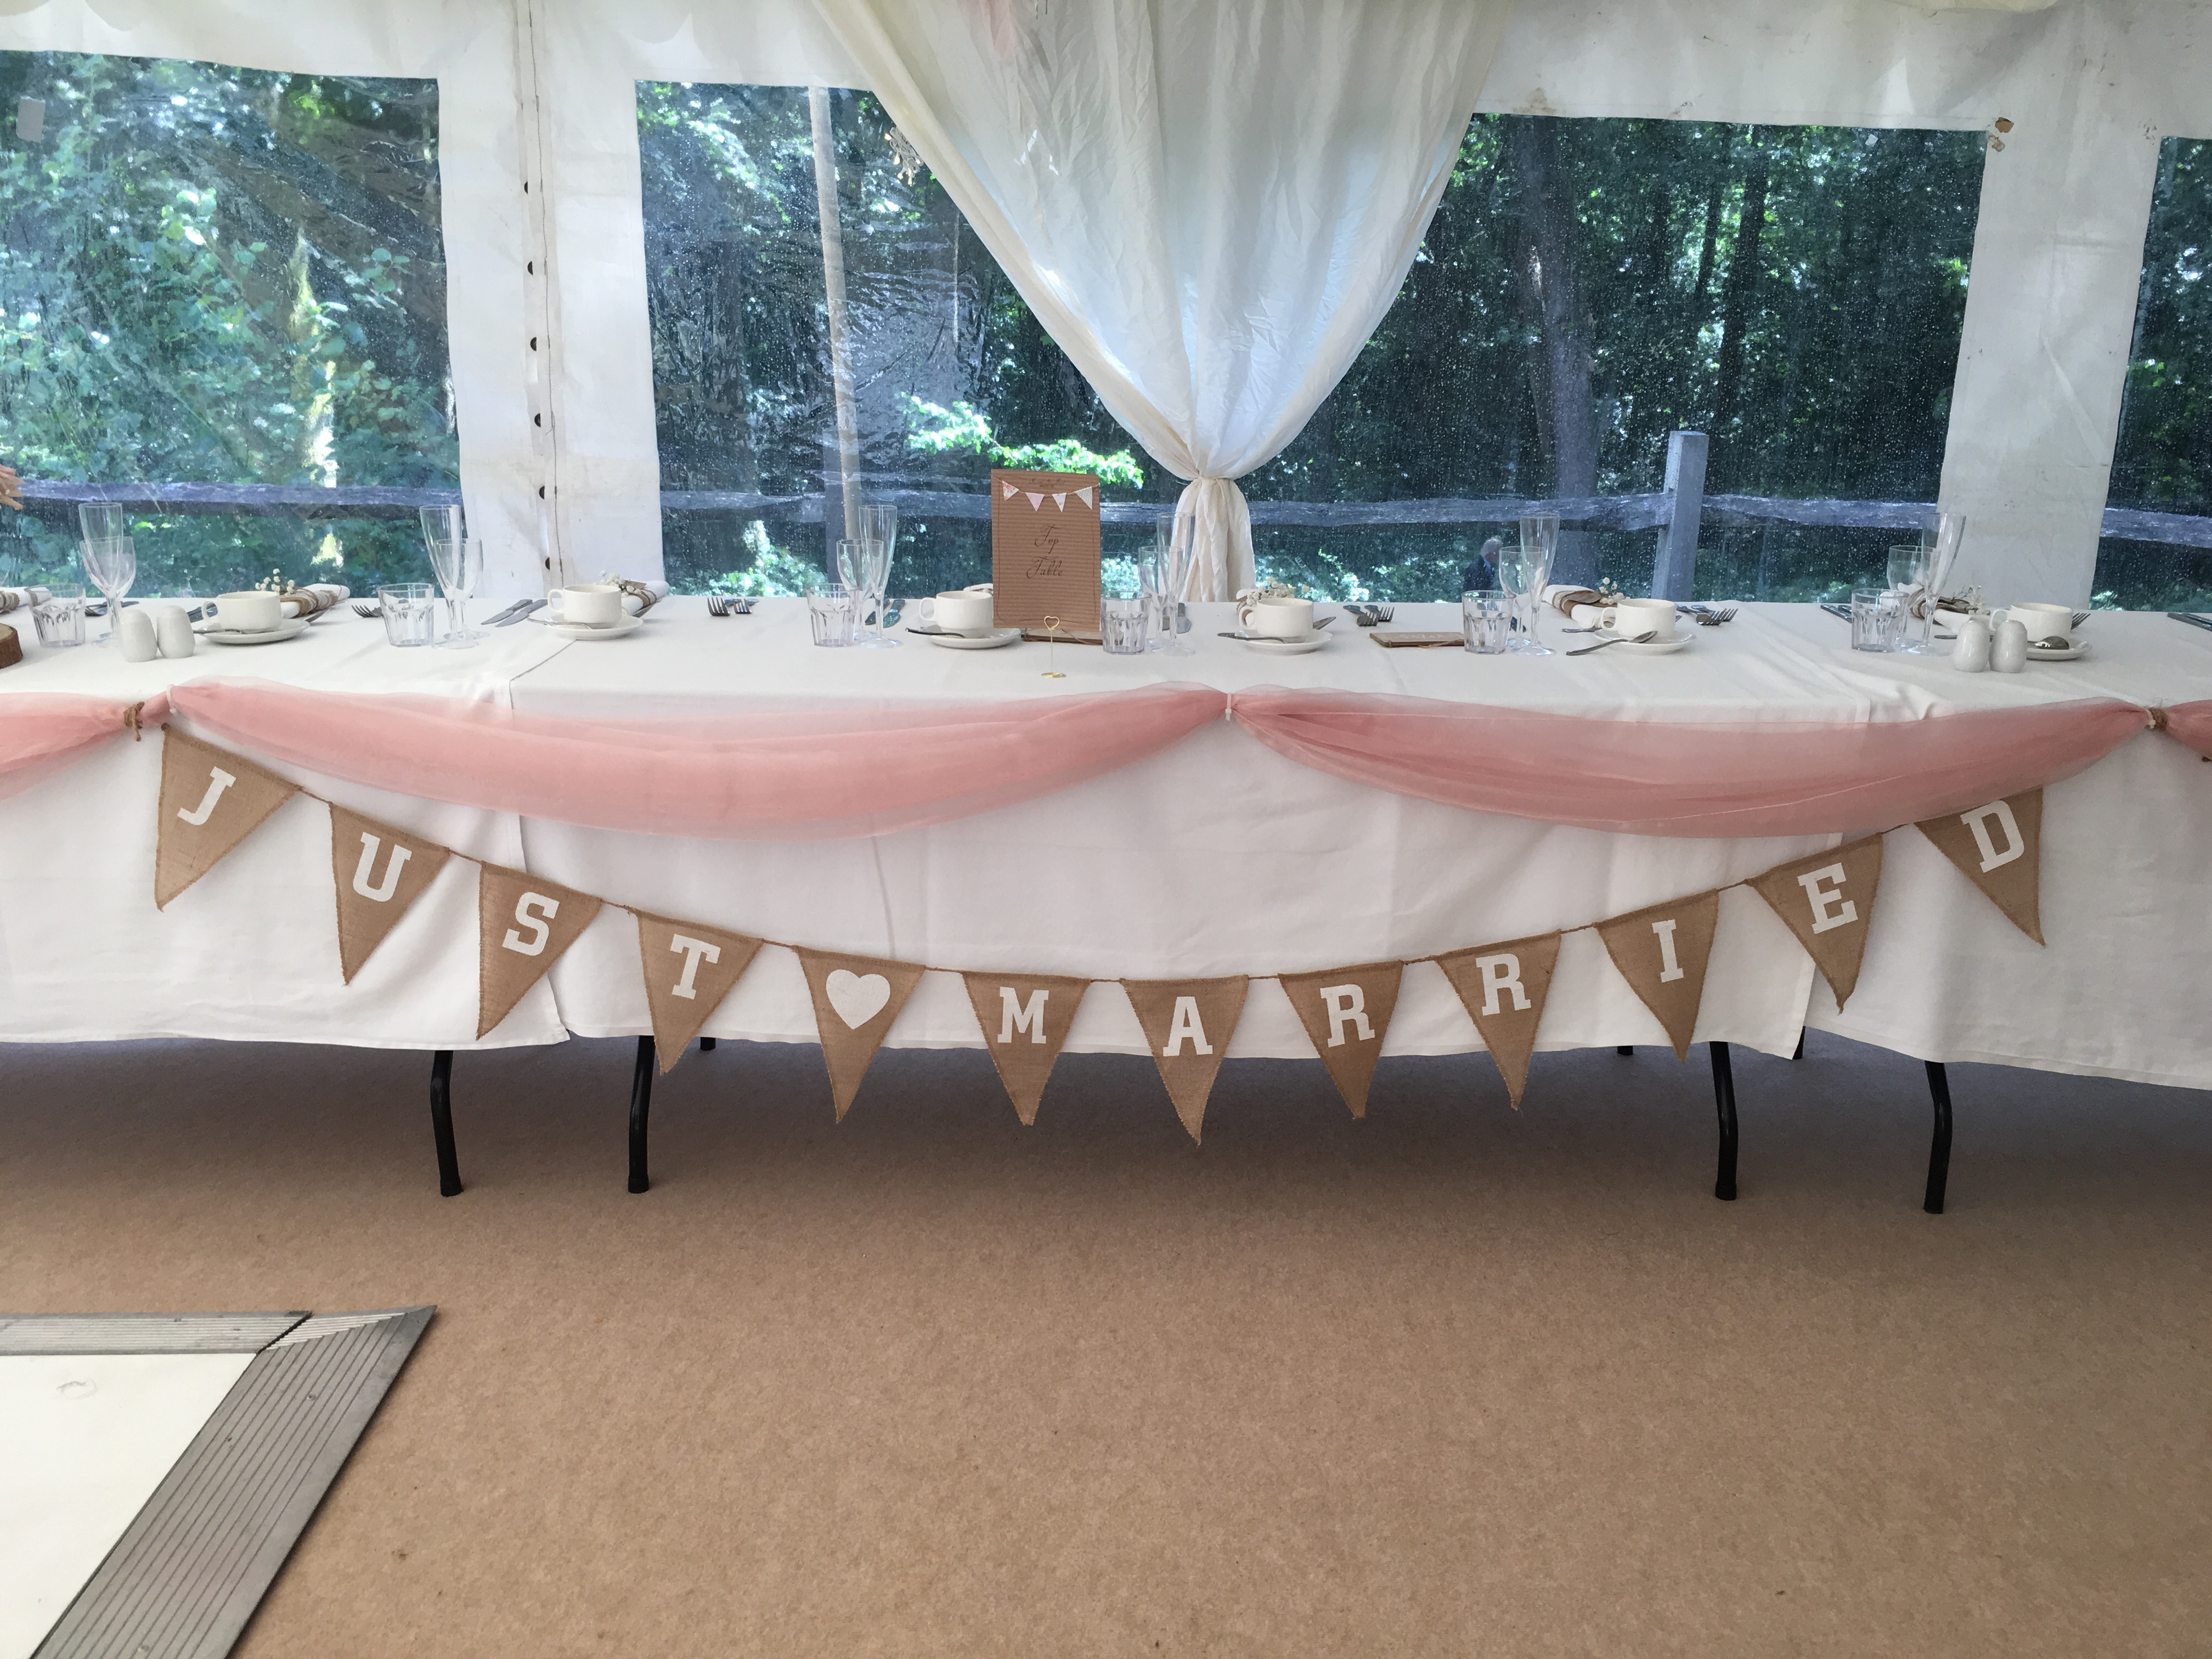 Just Married Top Table Bunting Sophia's Final Touch - Venue Styling - Weddings